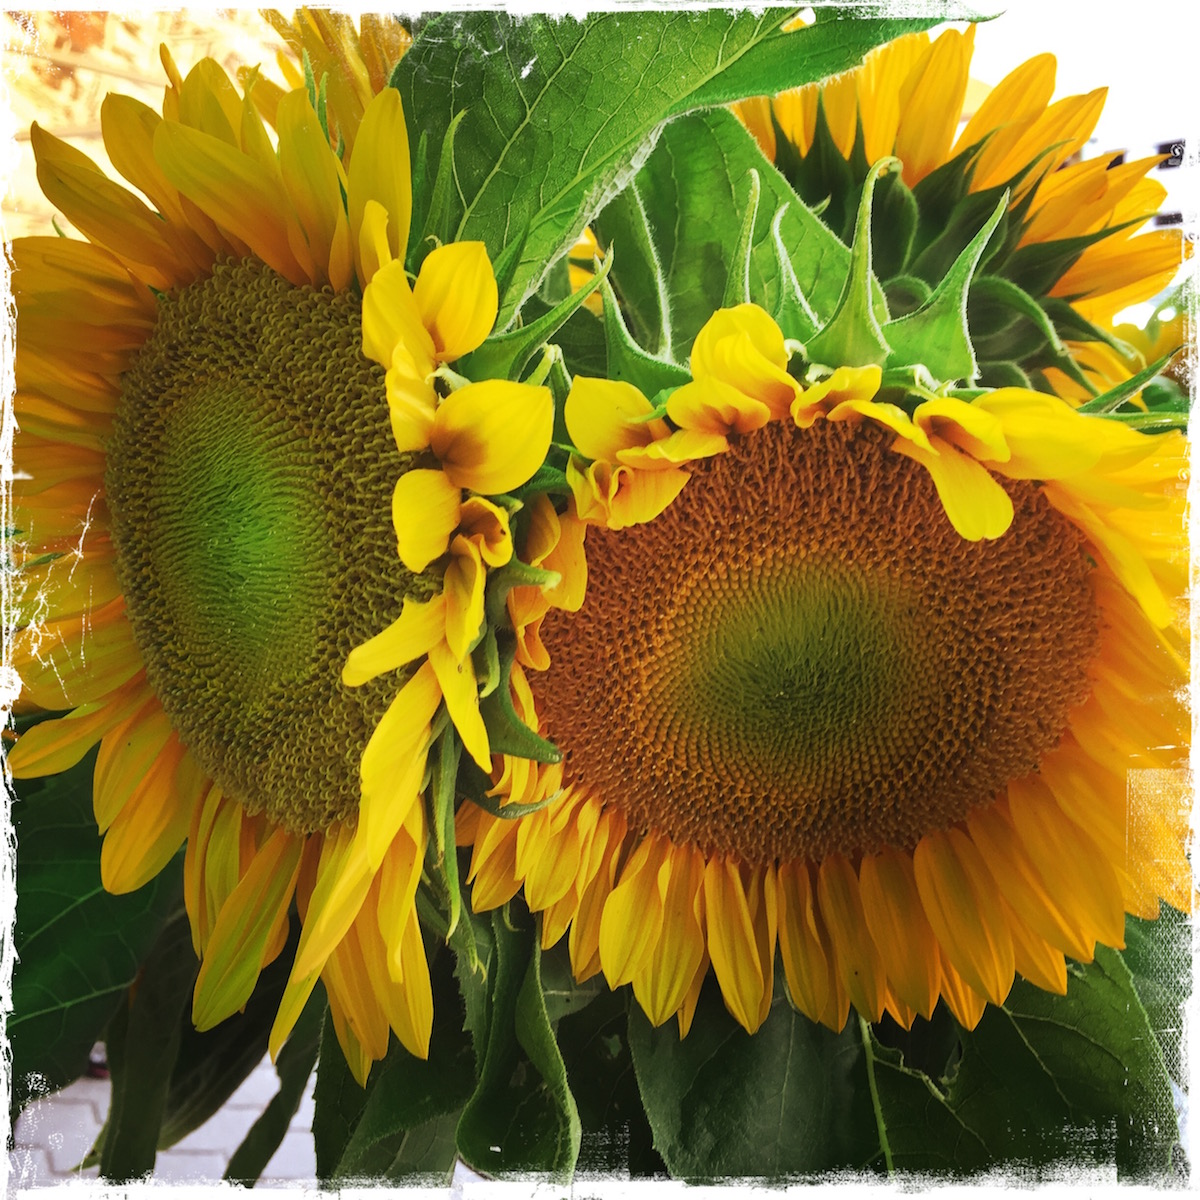 Giant sunflowers from farmer's market. Photo by Barbara Sinclair